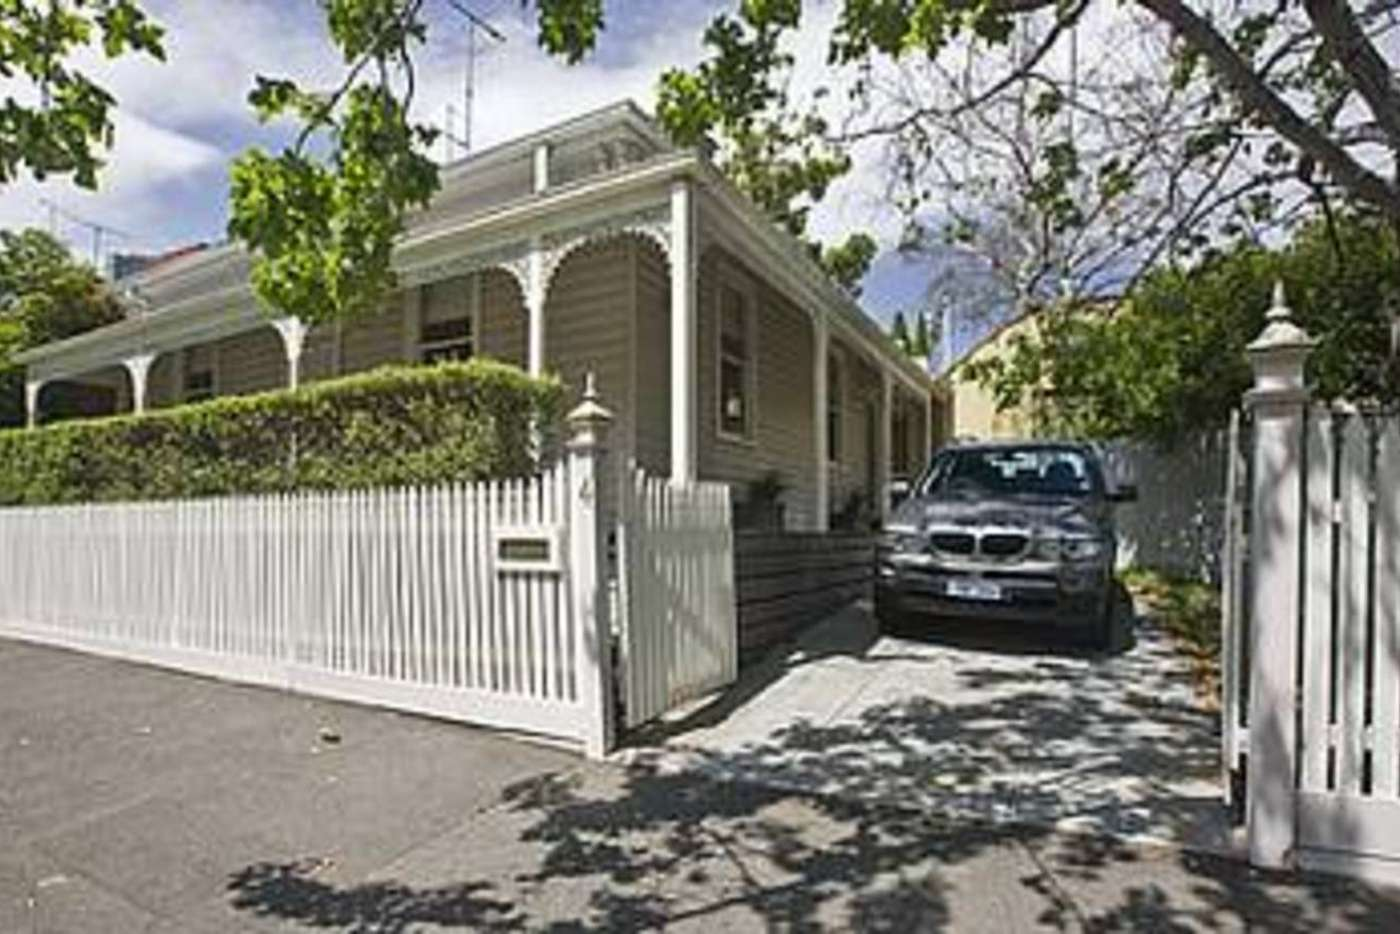 Main view of Homely house listing, 4 Melrose Street, North Melbourne VIC 3051